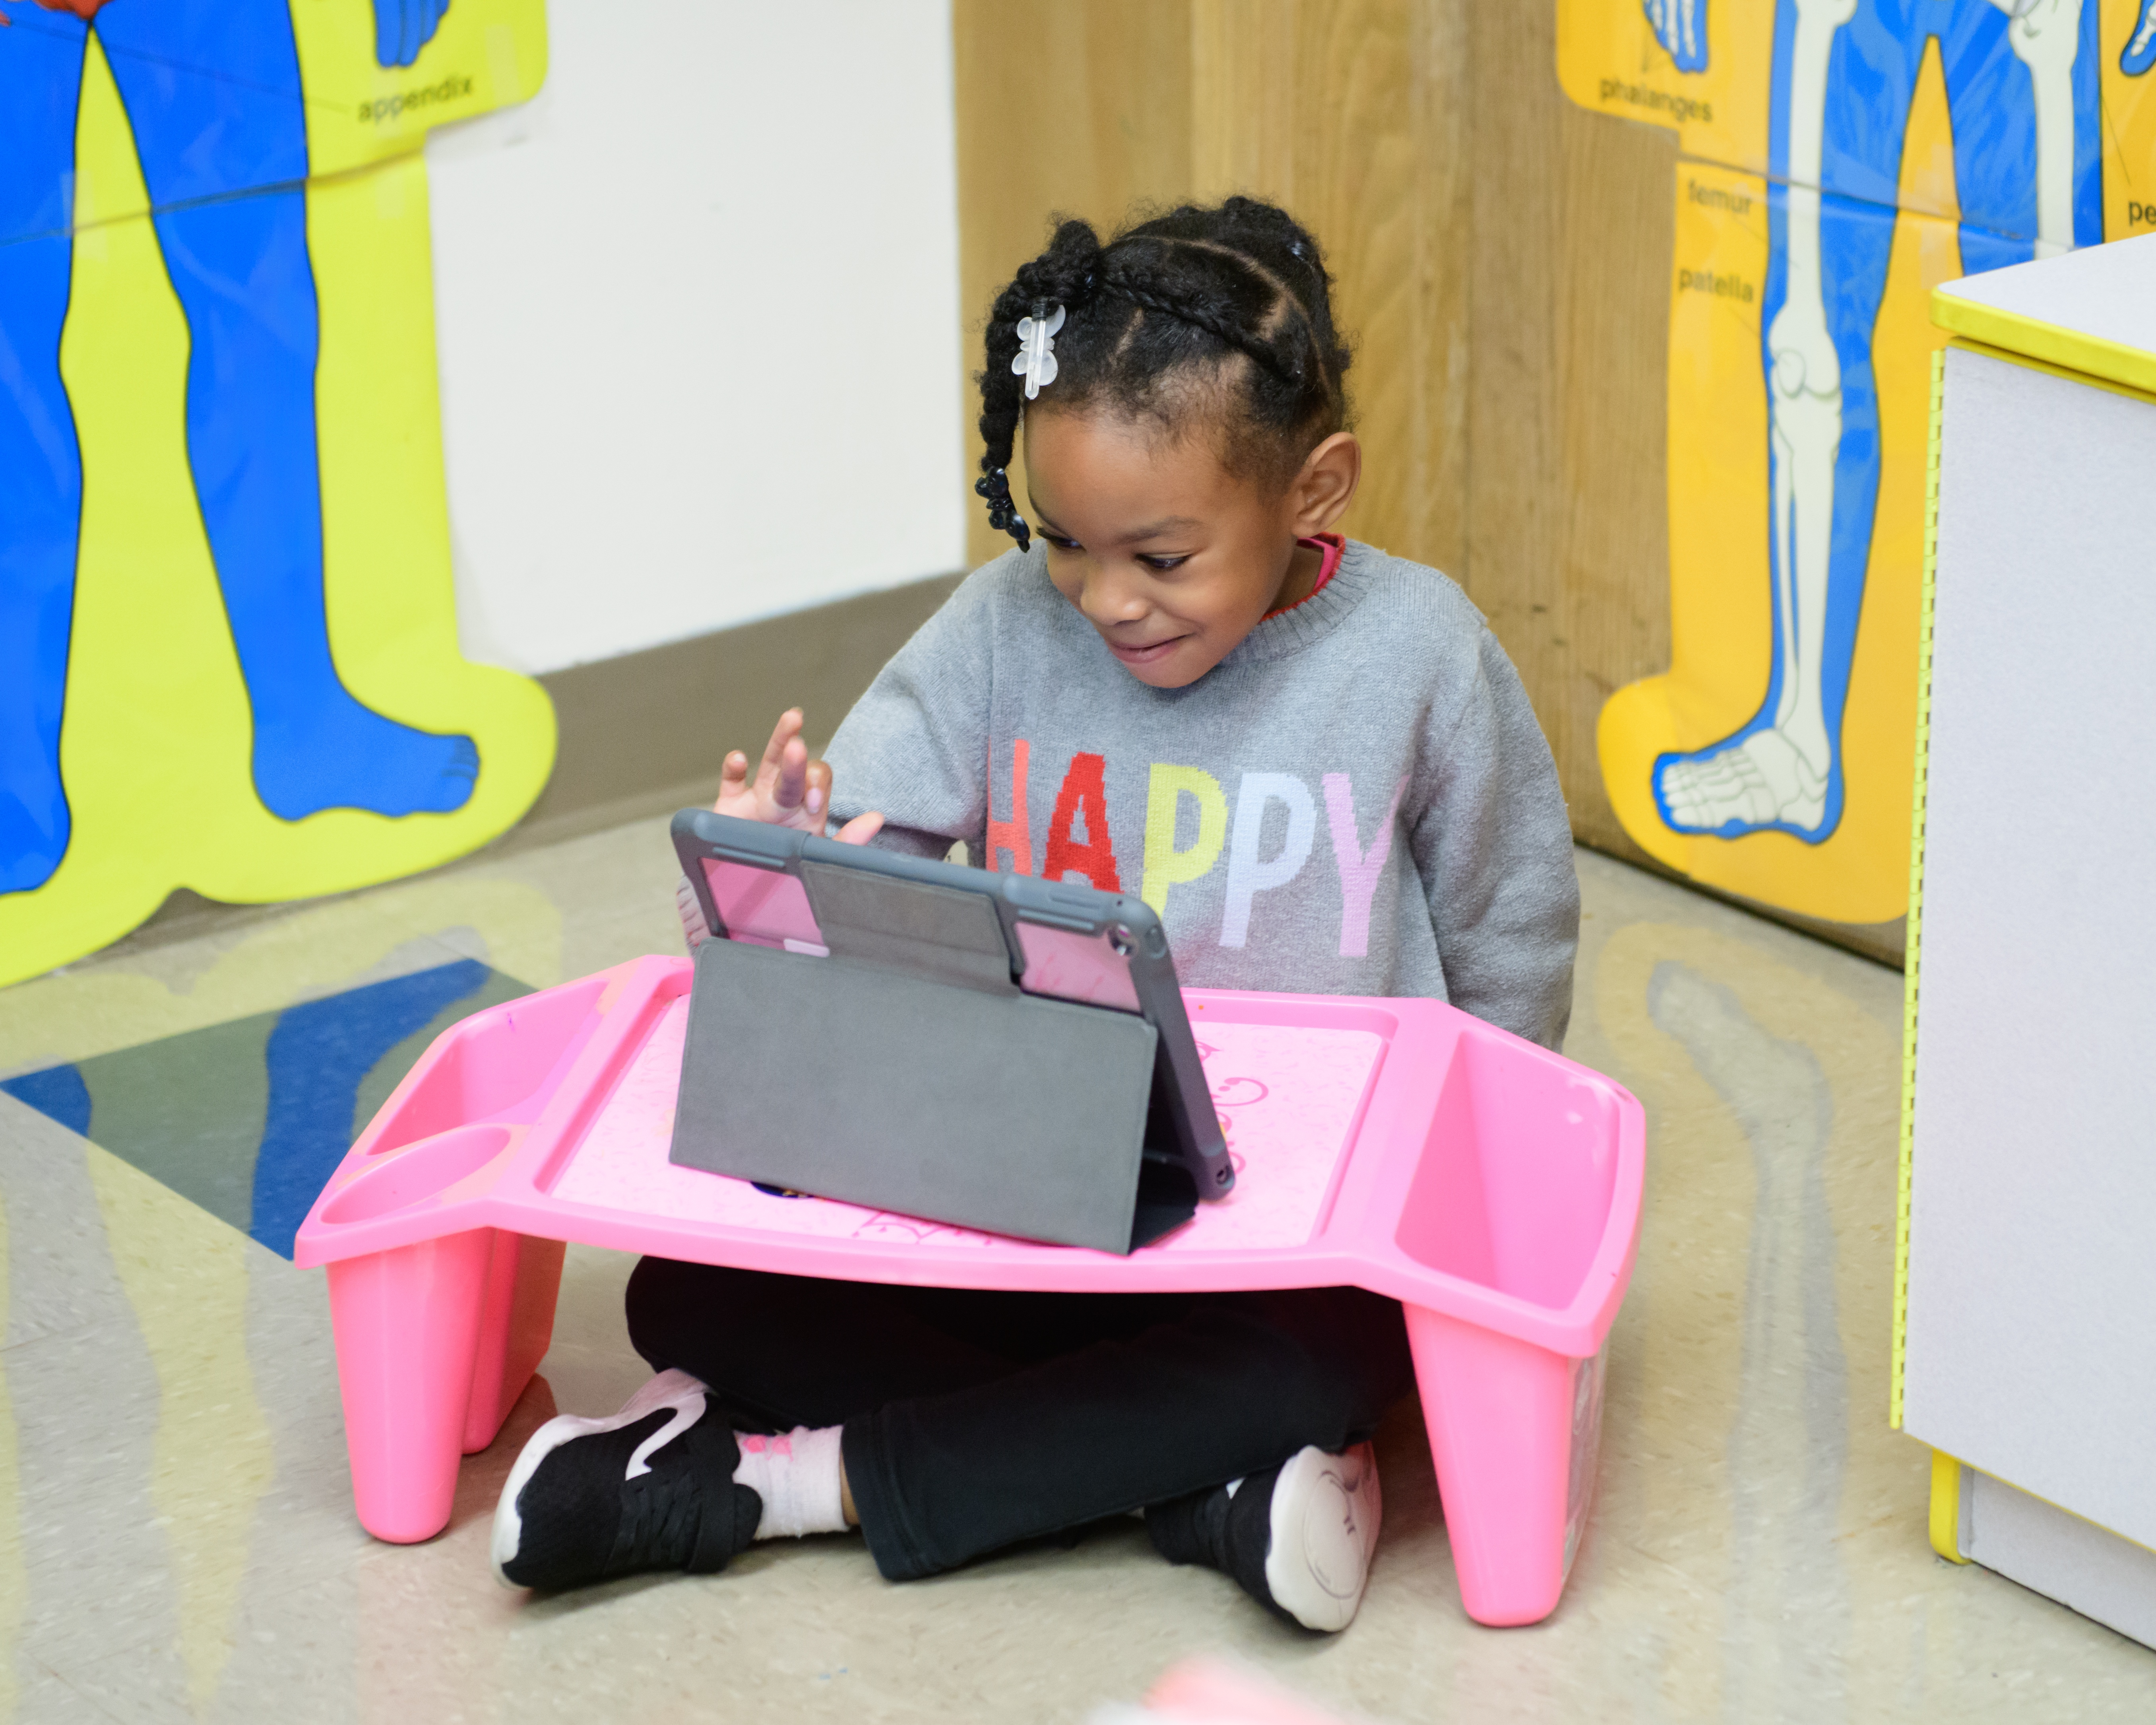 Photo: Irving student uses iPad